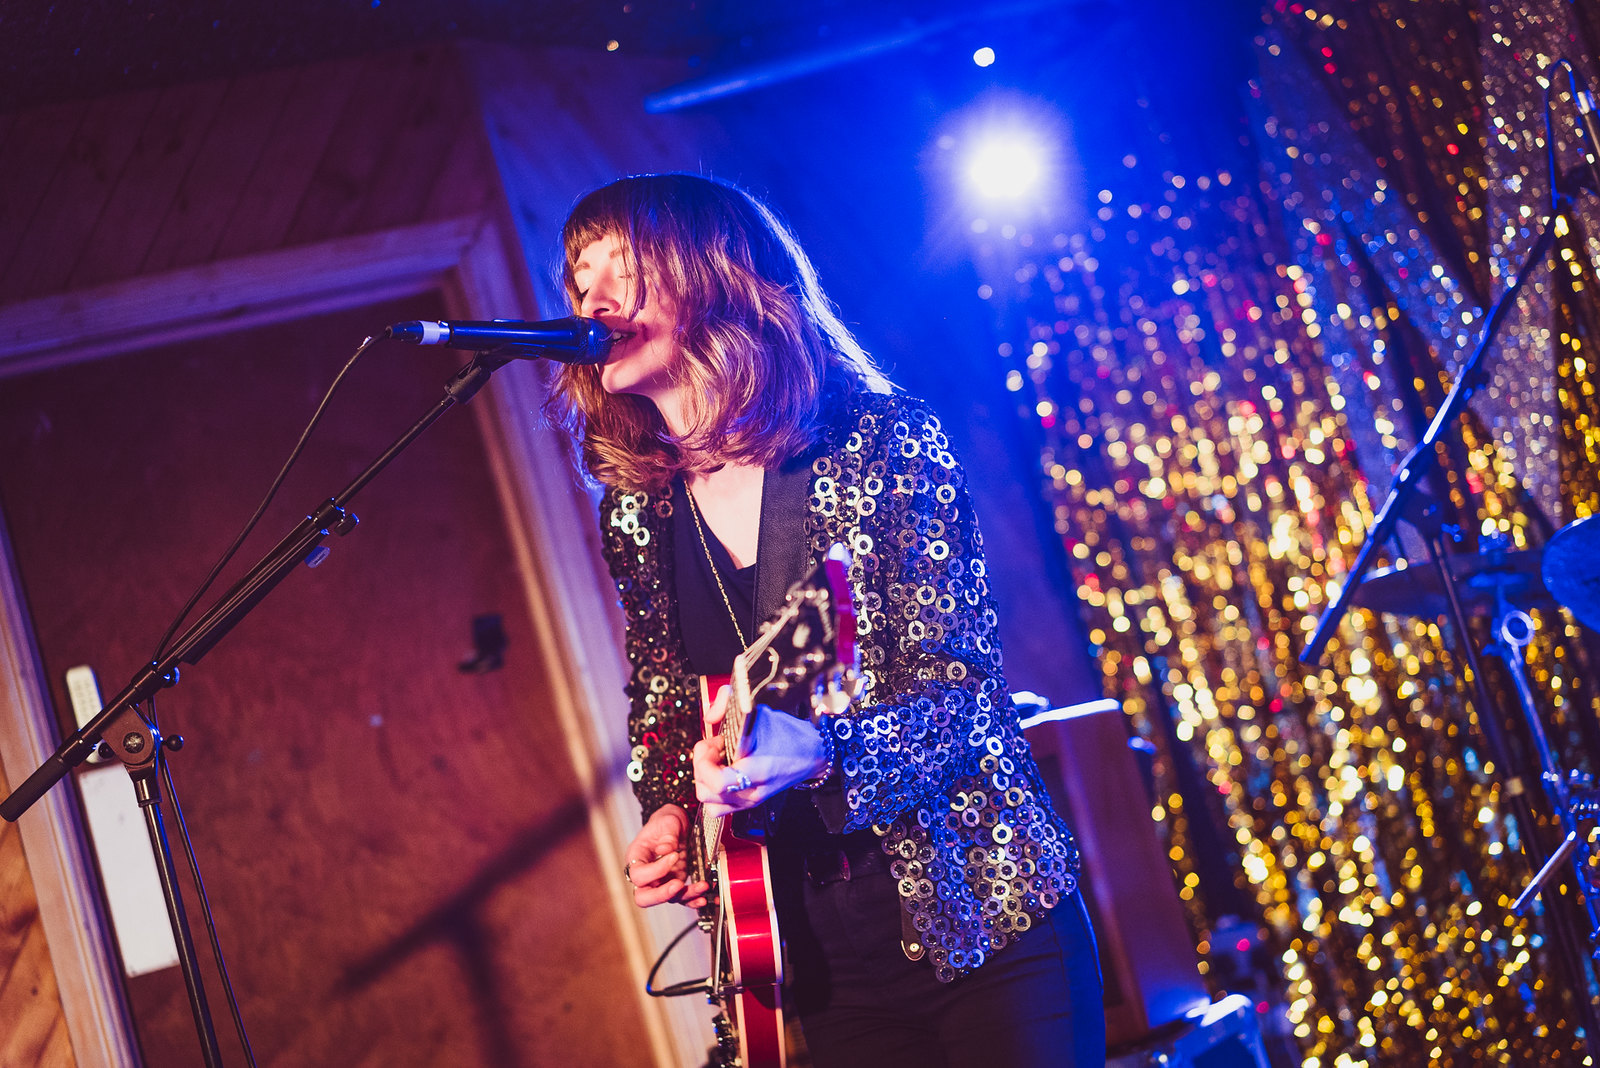 Indian Queens supporting Fews at the Moth Club